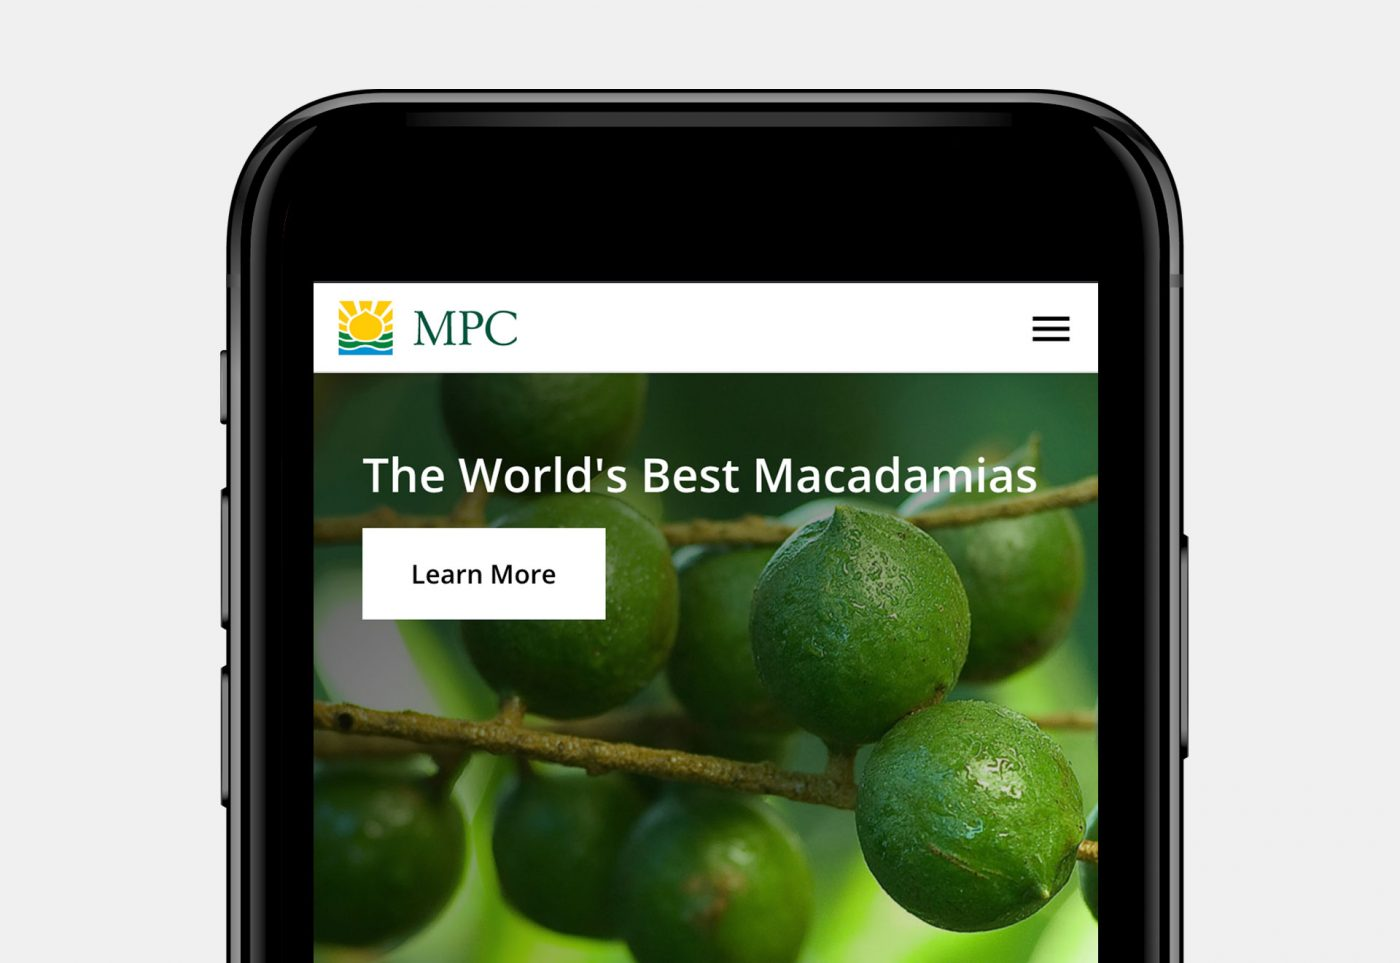 web design for MPC mobile view